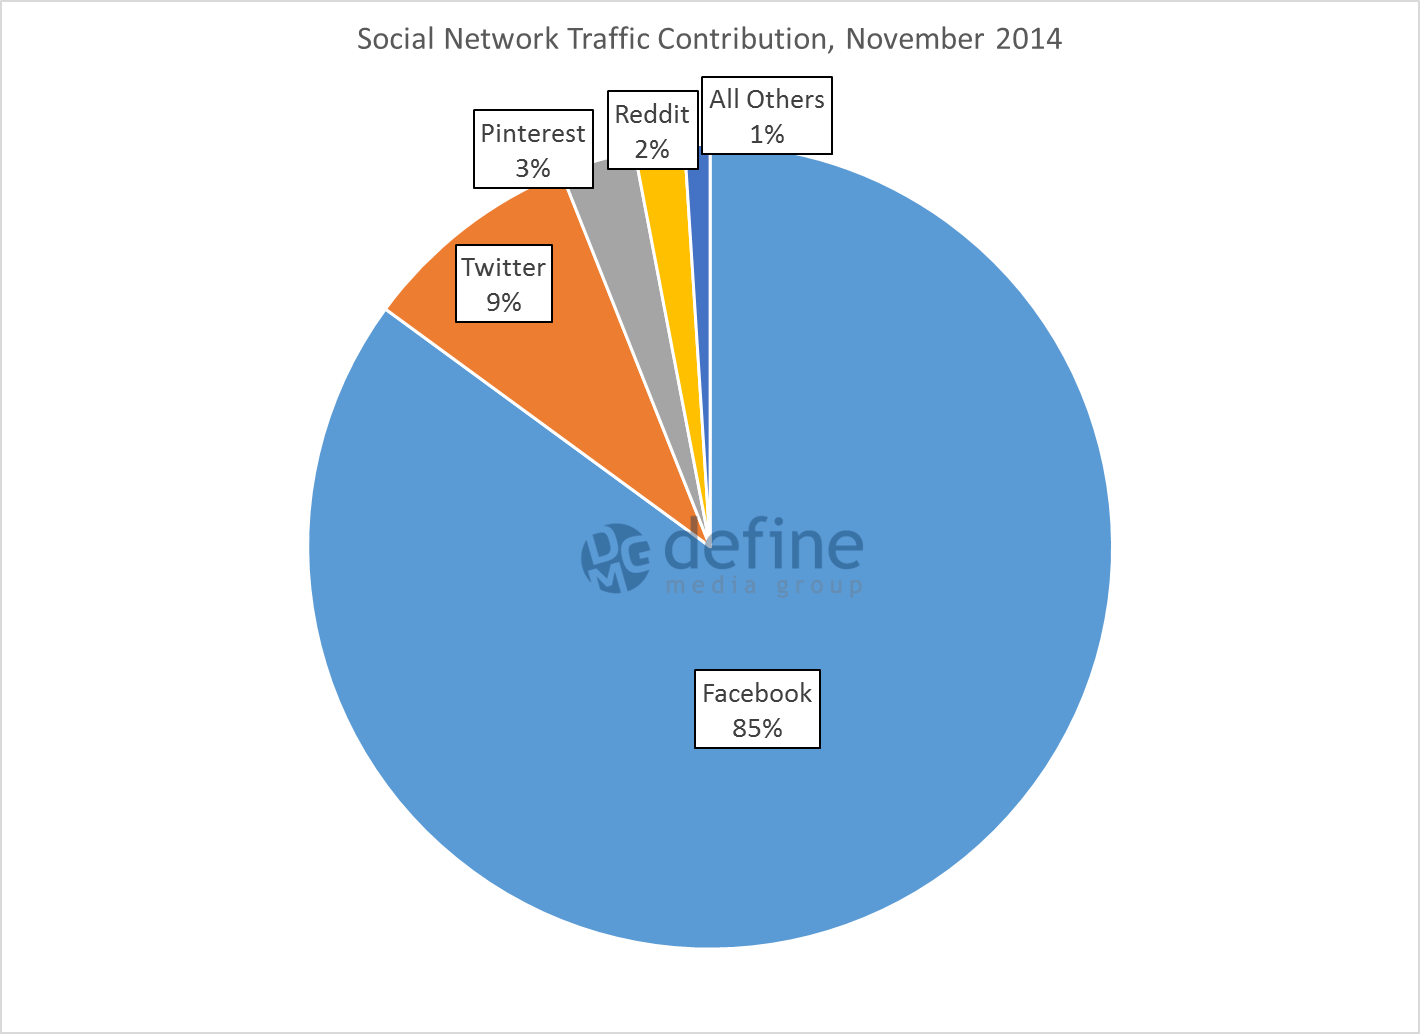 fb-8-social-network-contribution-nov-14